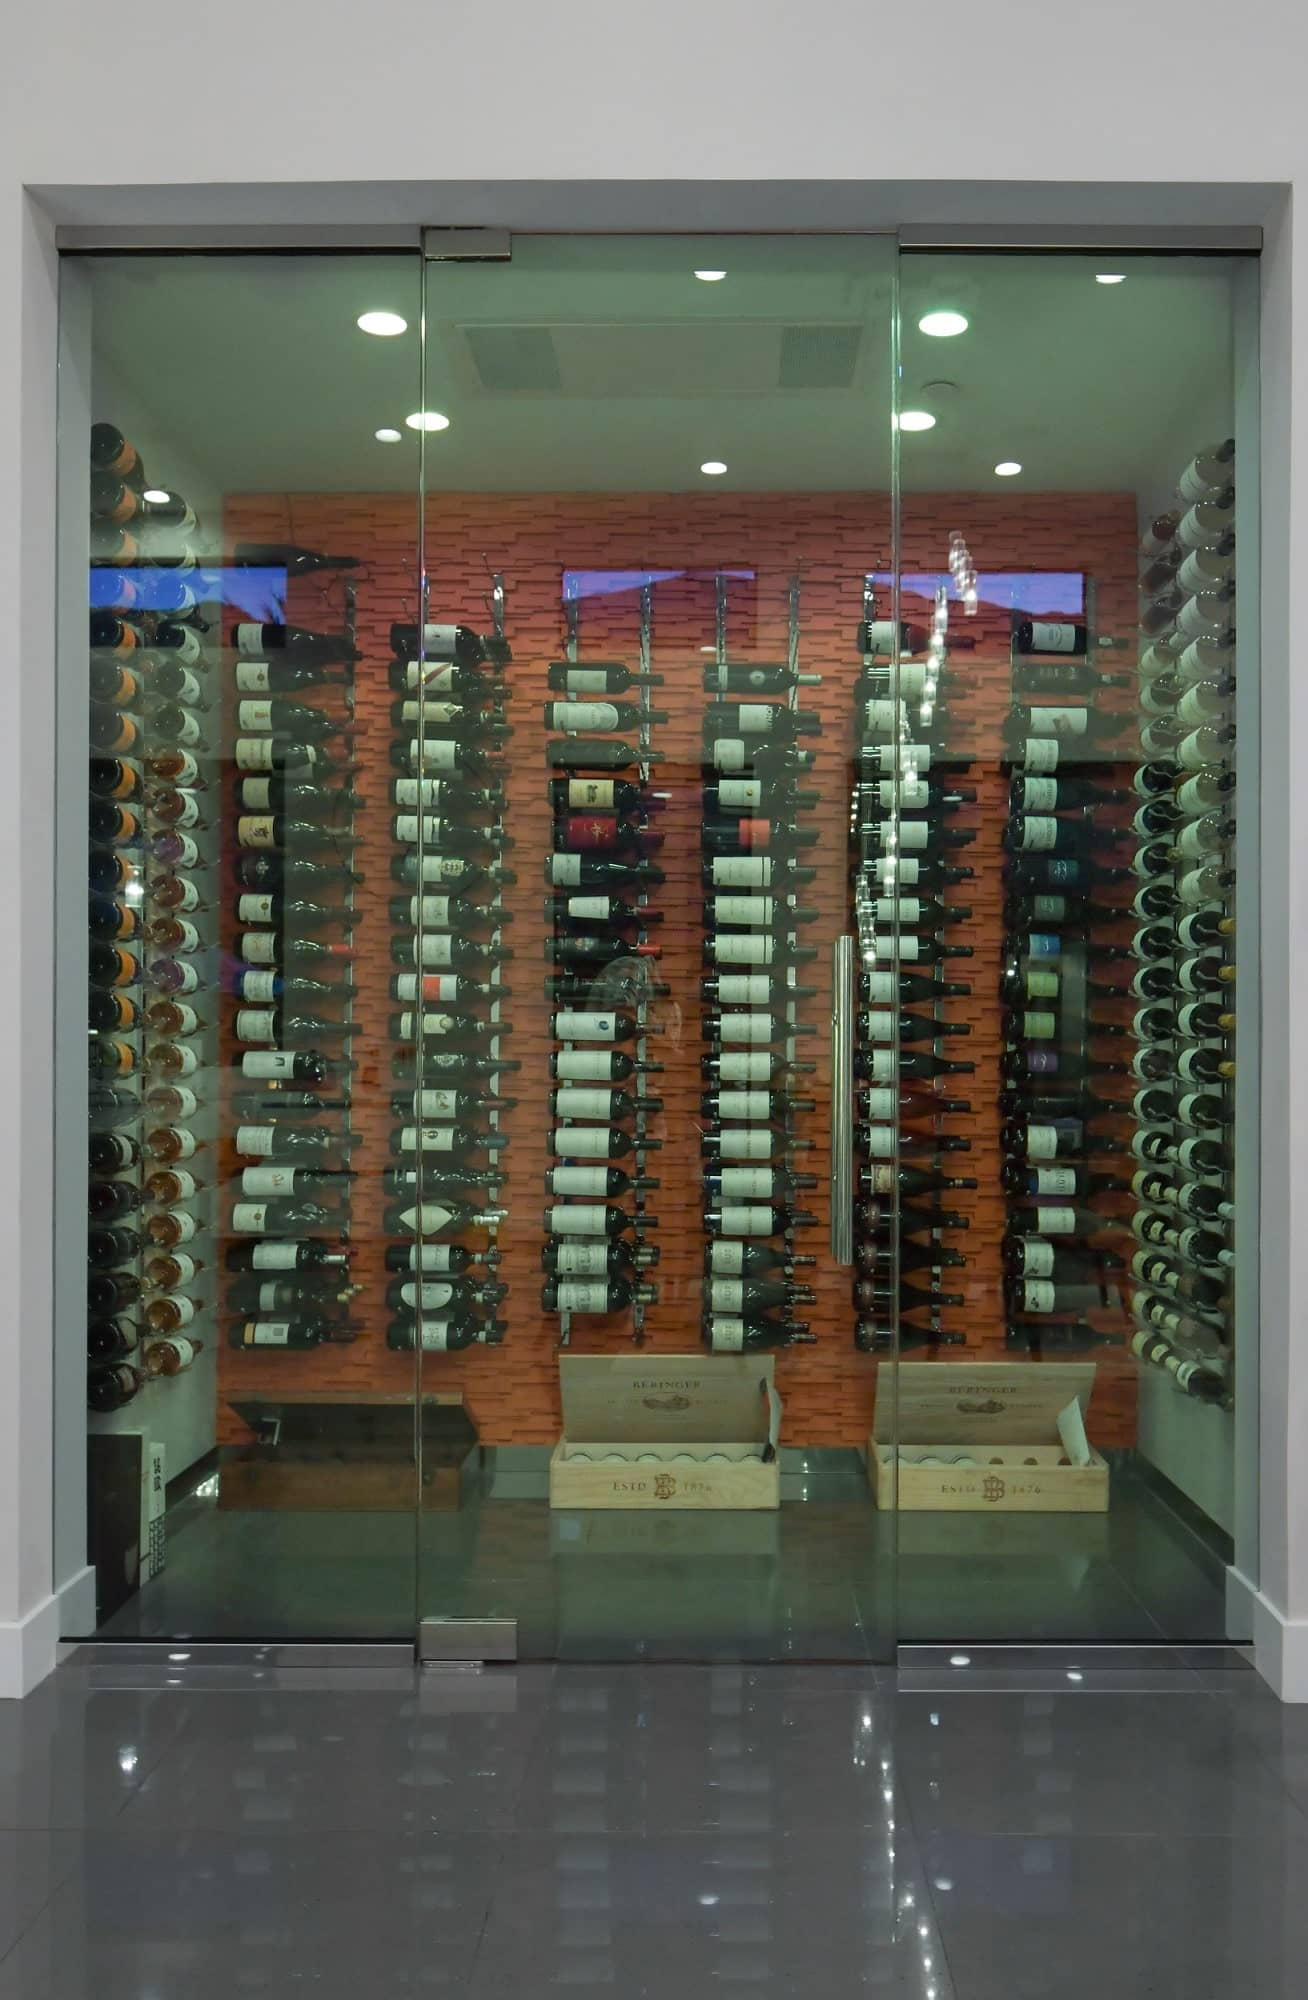 Color of LED for this wine cellar is adjustable. For this one, the lighting was set to subtle green.